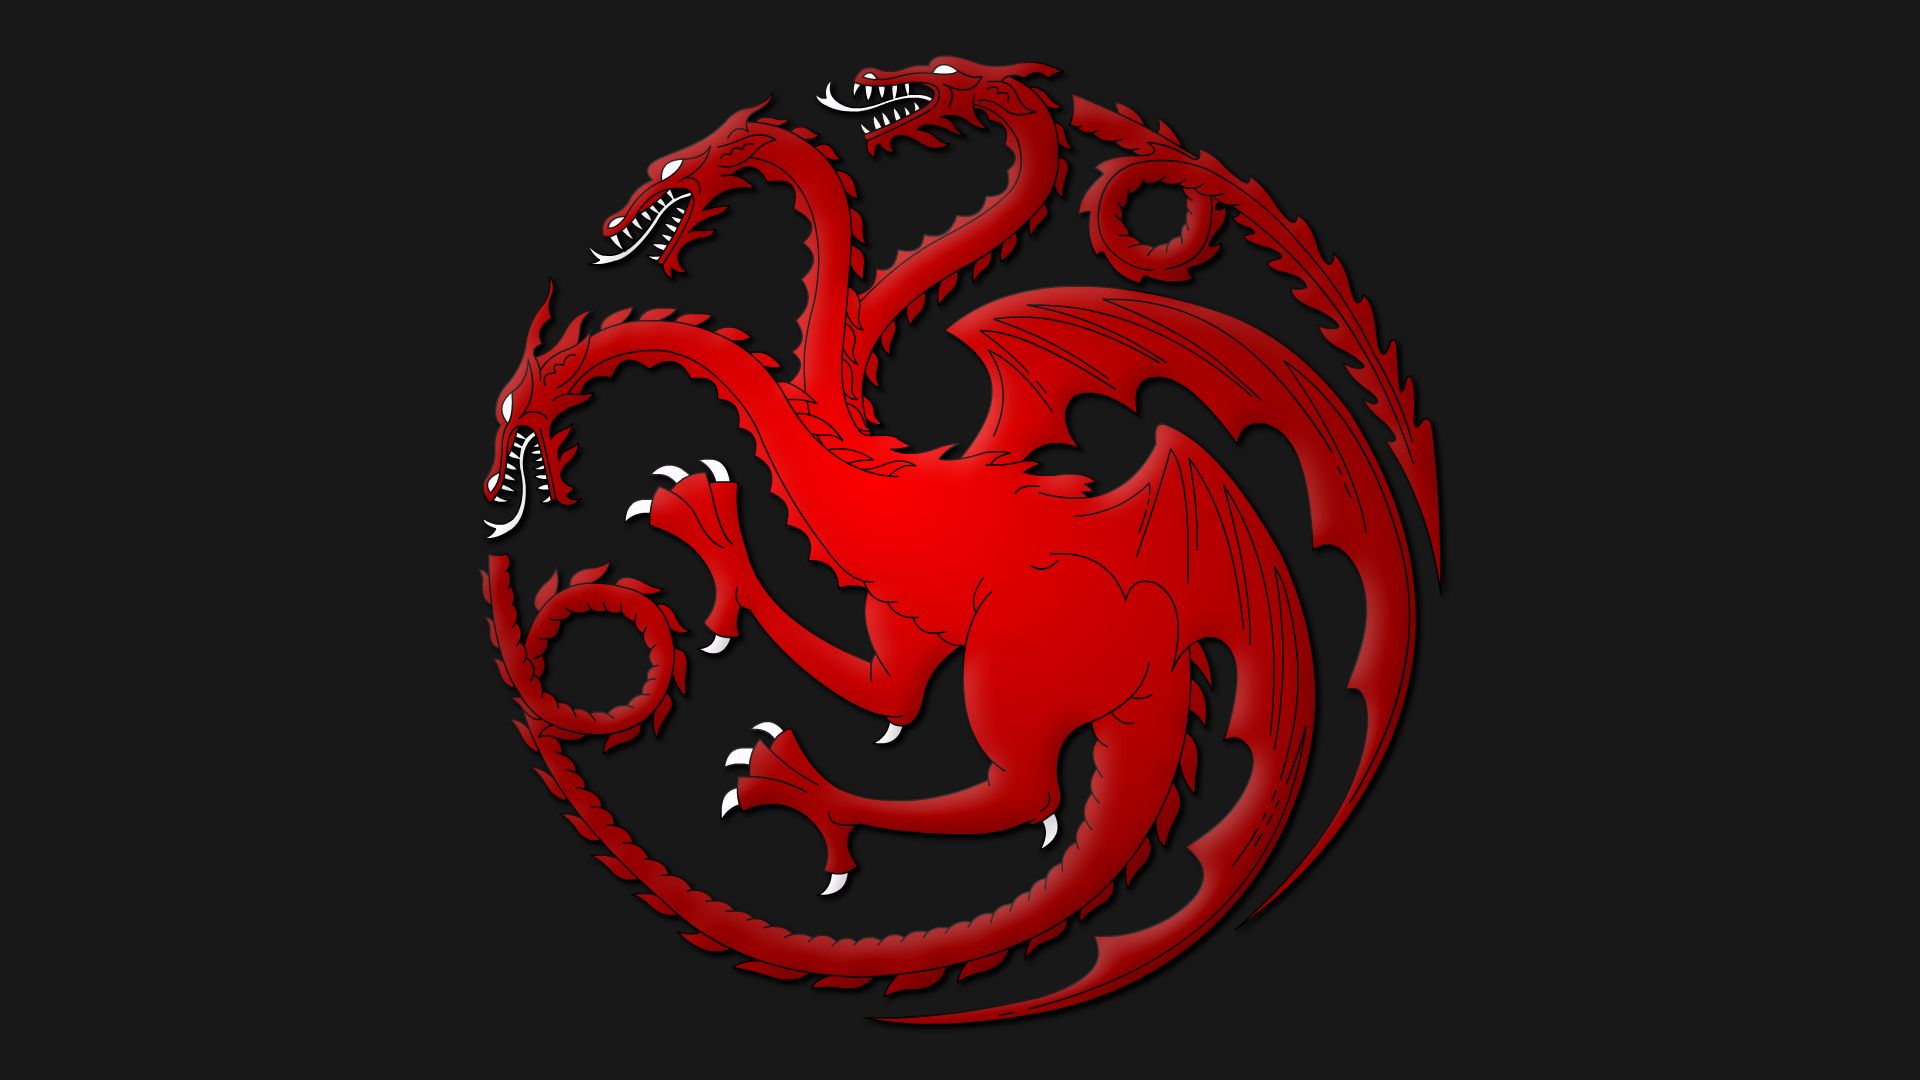 House targaryen wallpaper wallpapersafari for House music symbol